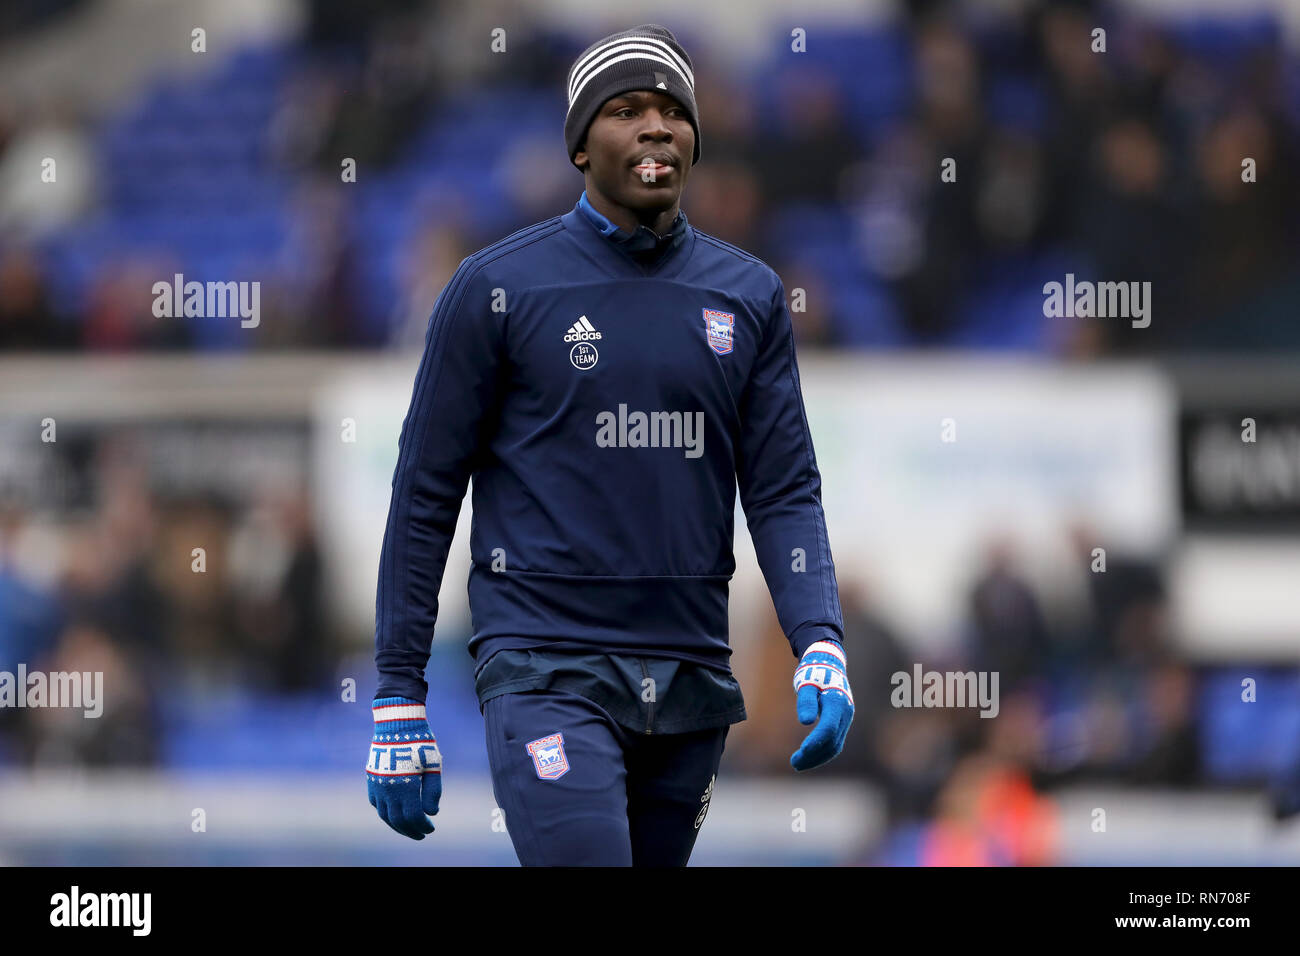 Aristote Nsiala of Ipswich Town - Ipswich Town v Stoke City, Sky Bet Championship, Portman Road, Ipswich - 16th February 2019  Editorial Use Only - Da - Stock Image